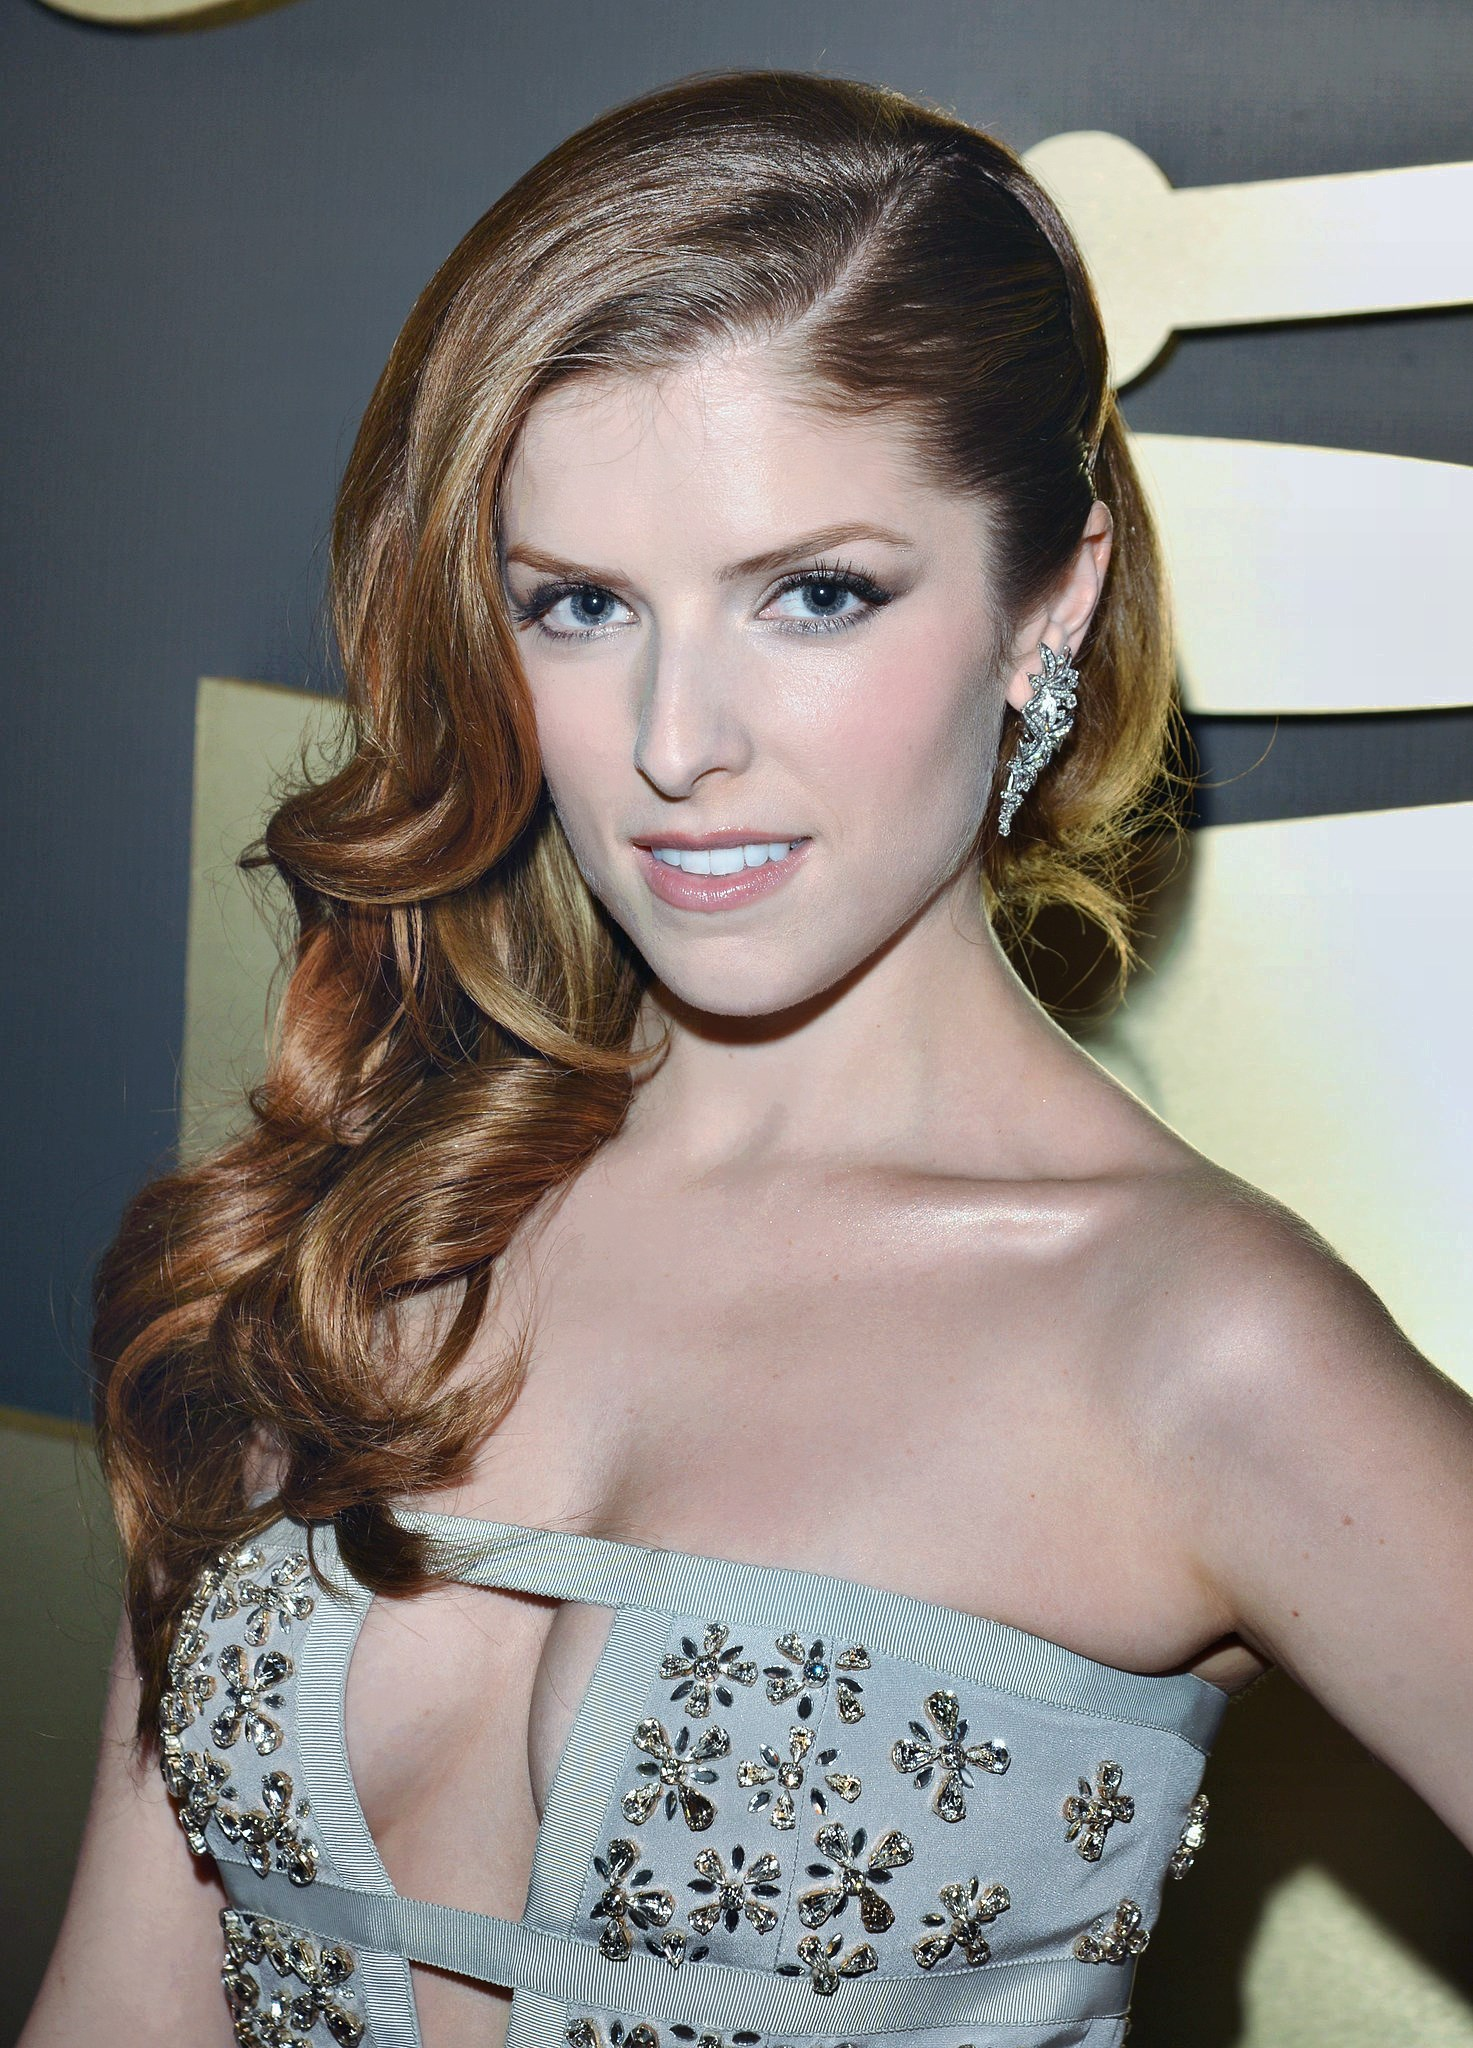 Anna Kendrick | Known people - famous people news and ...